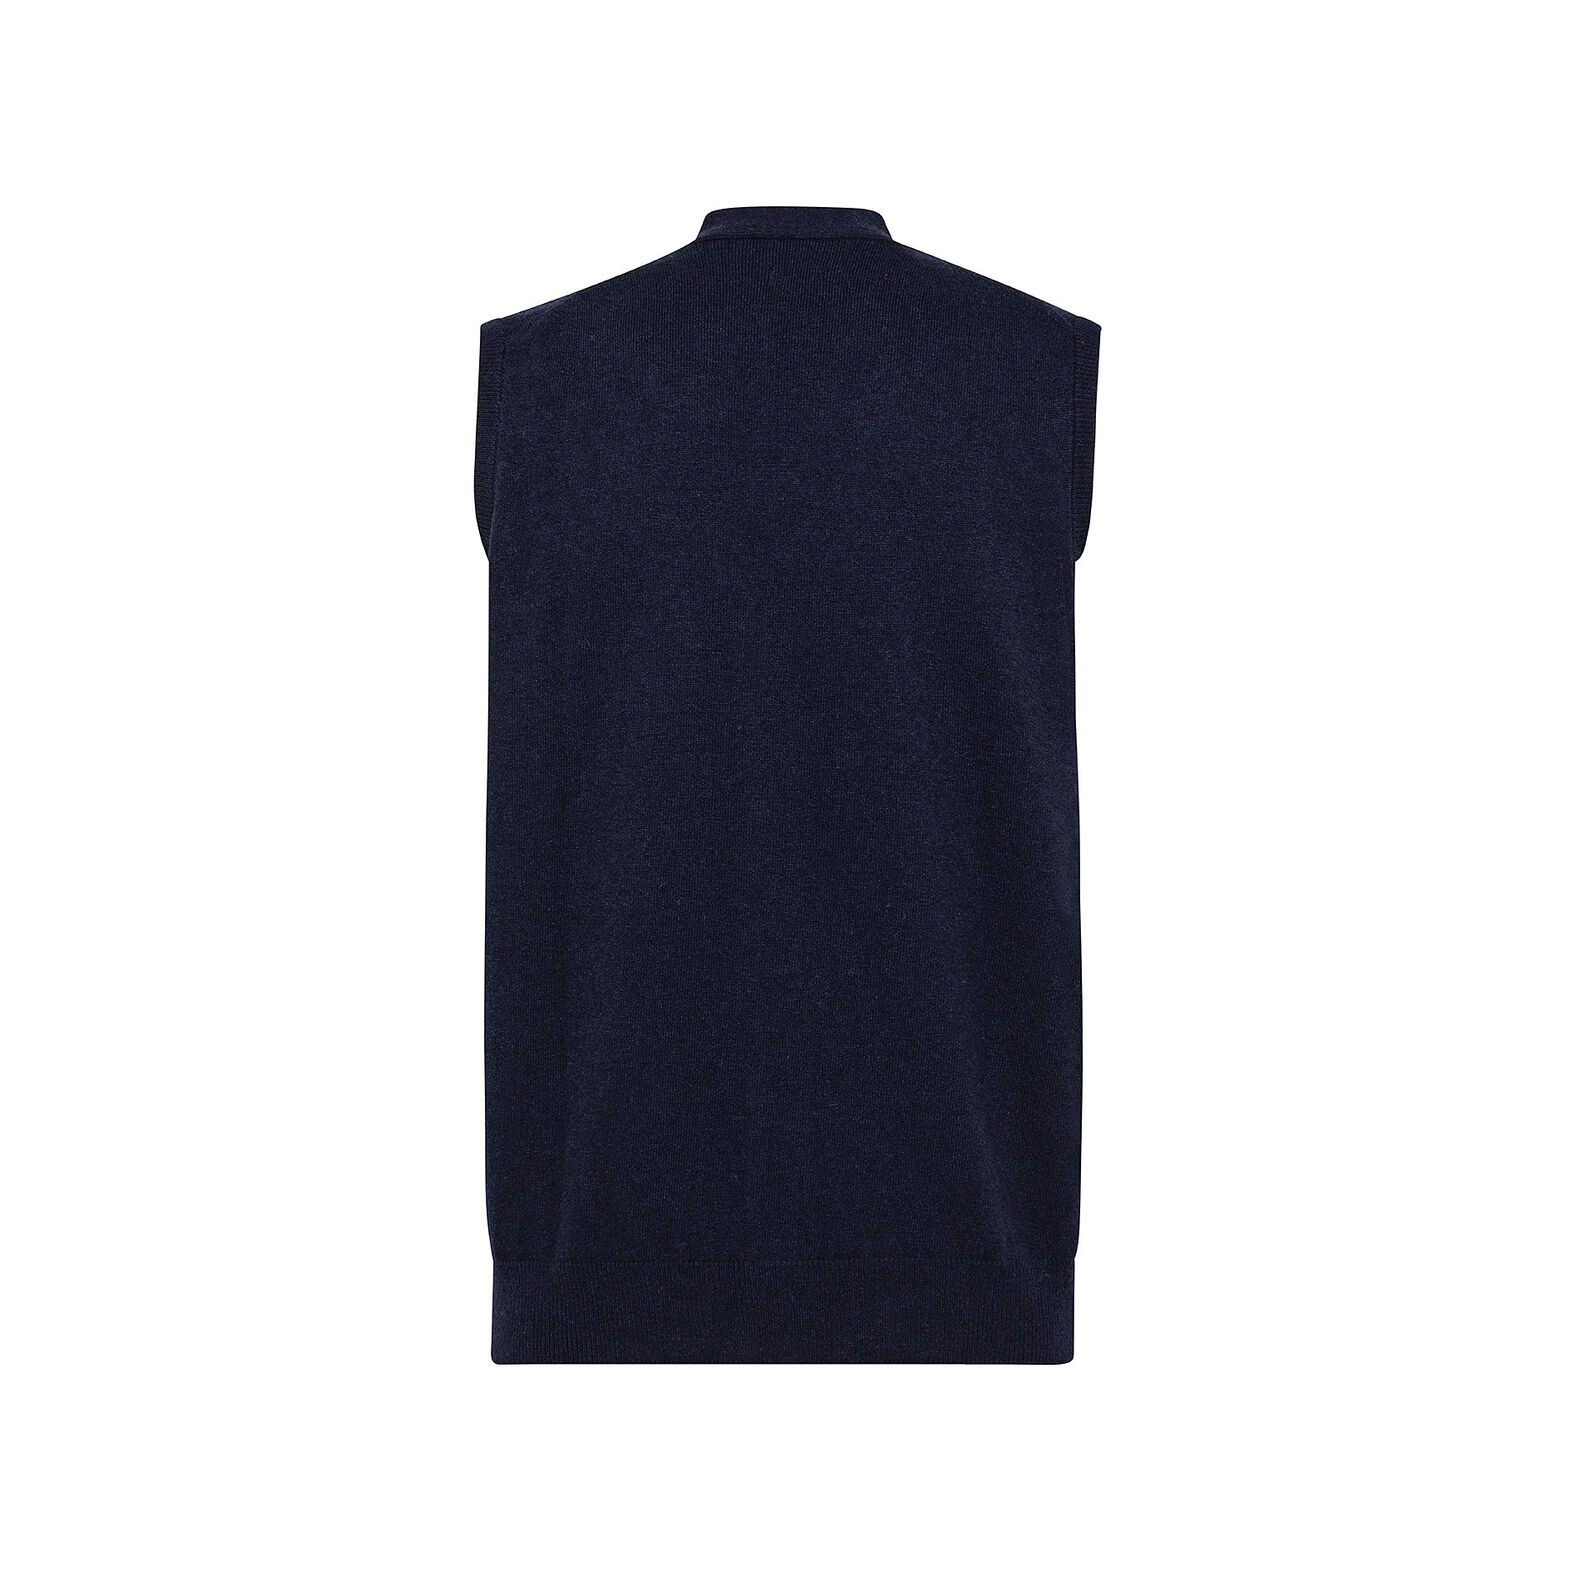 Solid colour gilet in cashmere blend